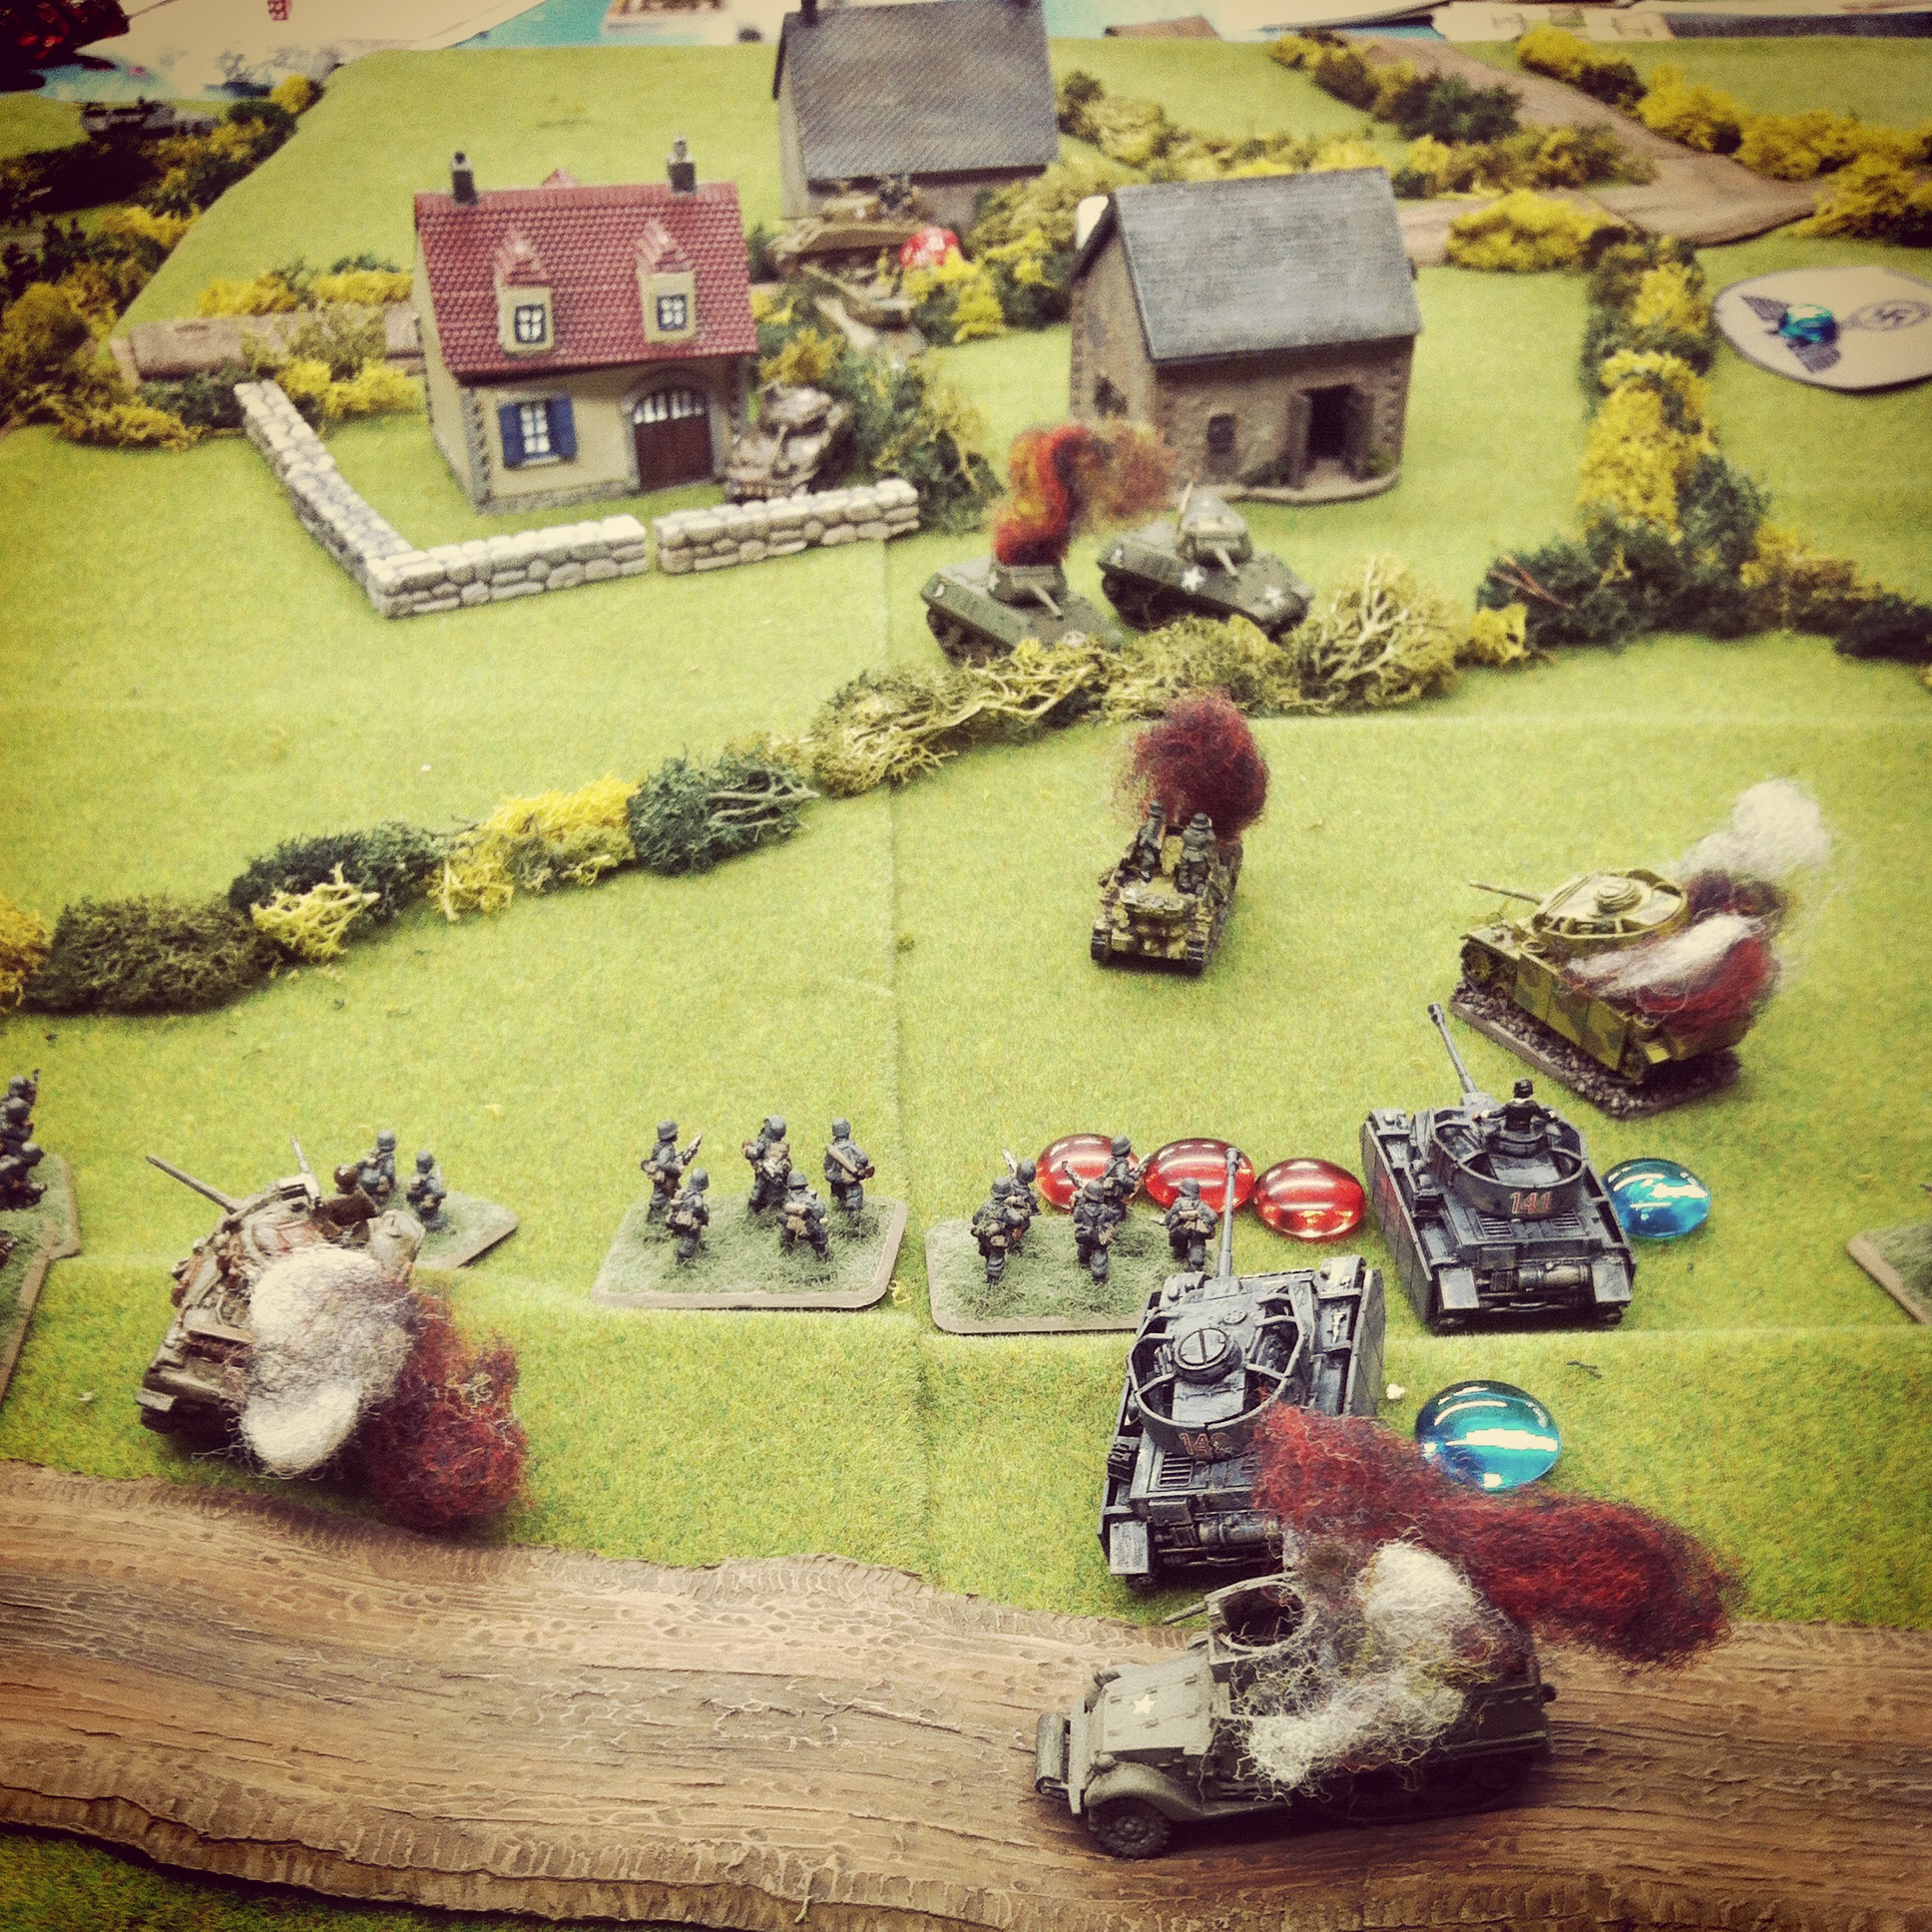 US and German armor exchange fire, leaving a Wespe, Panzer III and M10 Wolverine in flames